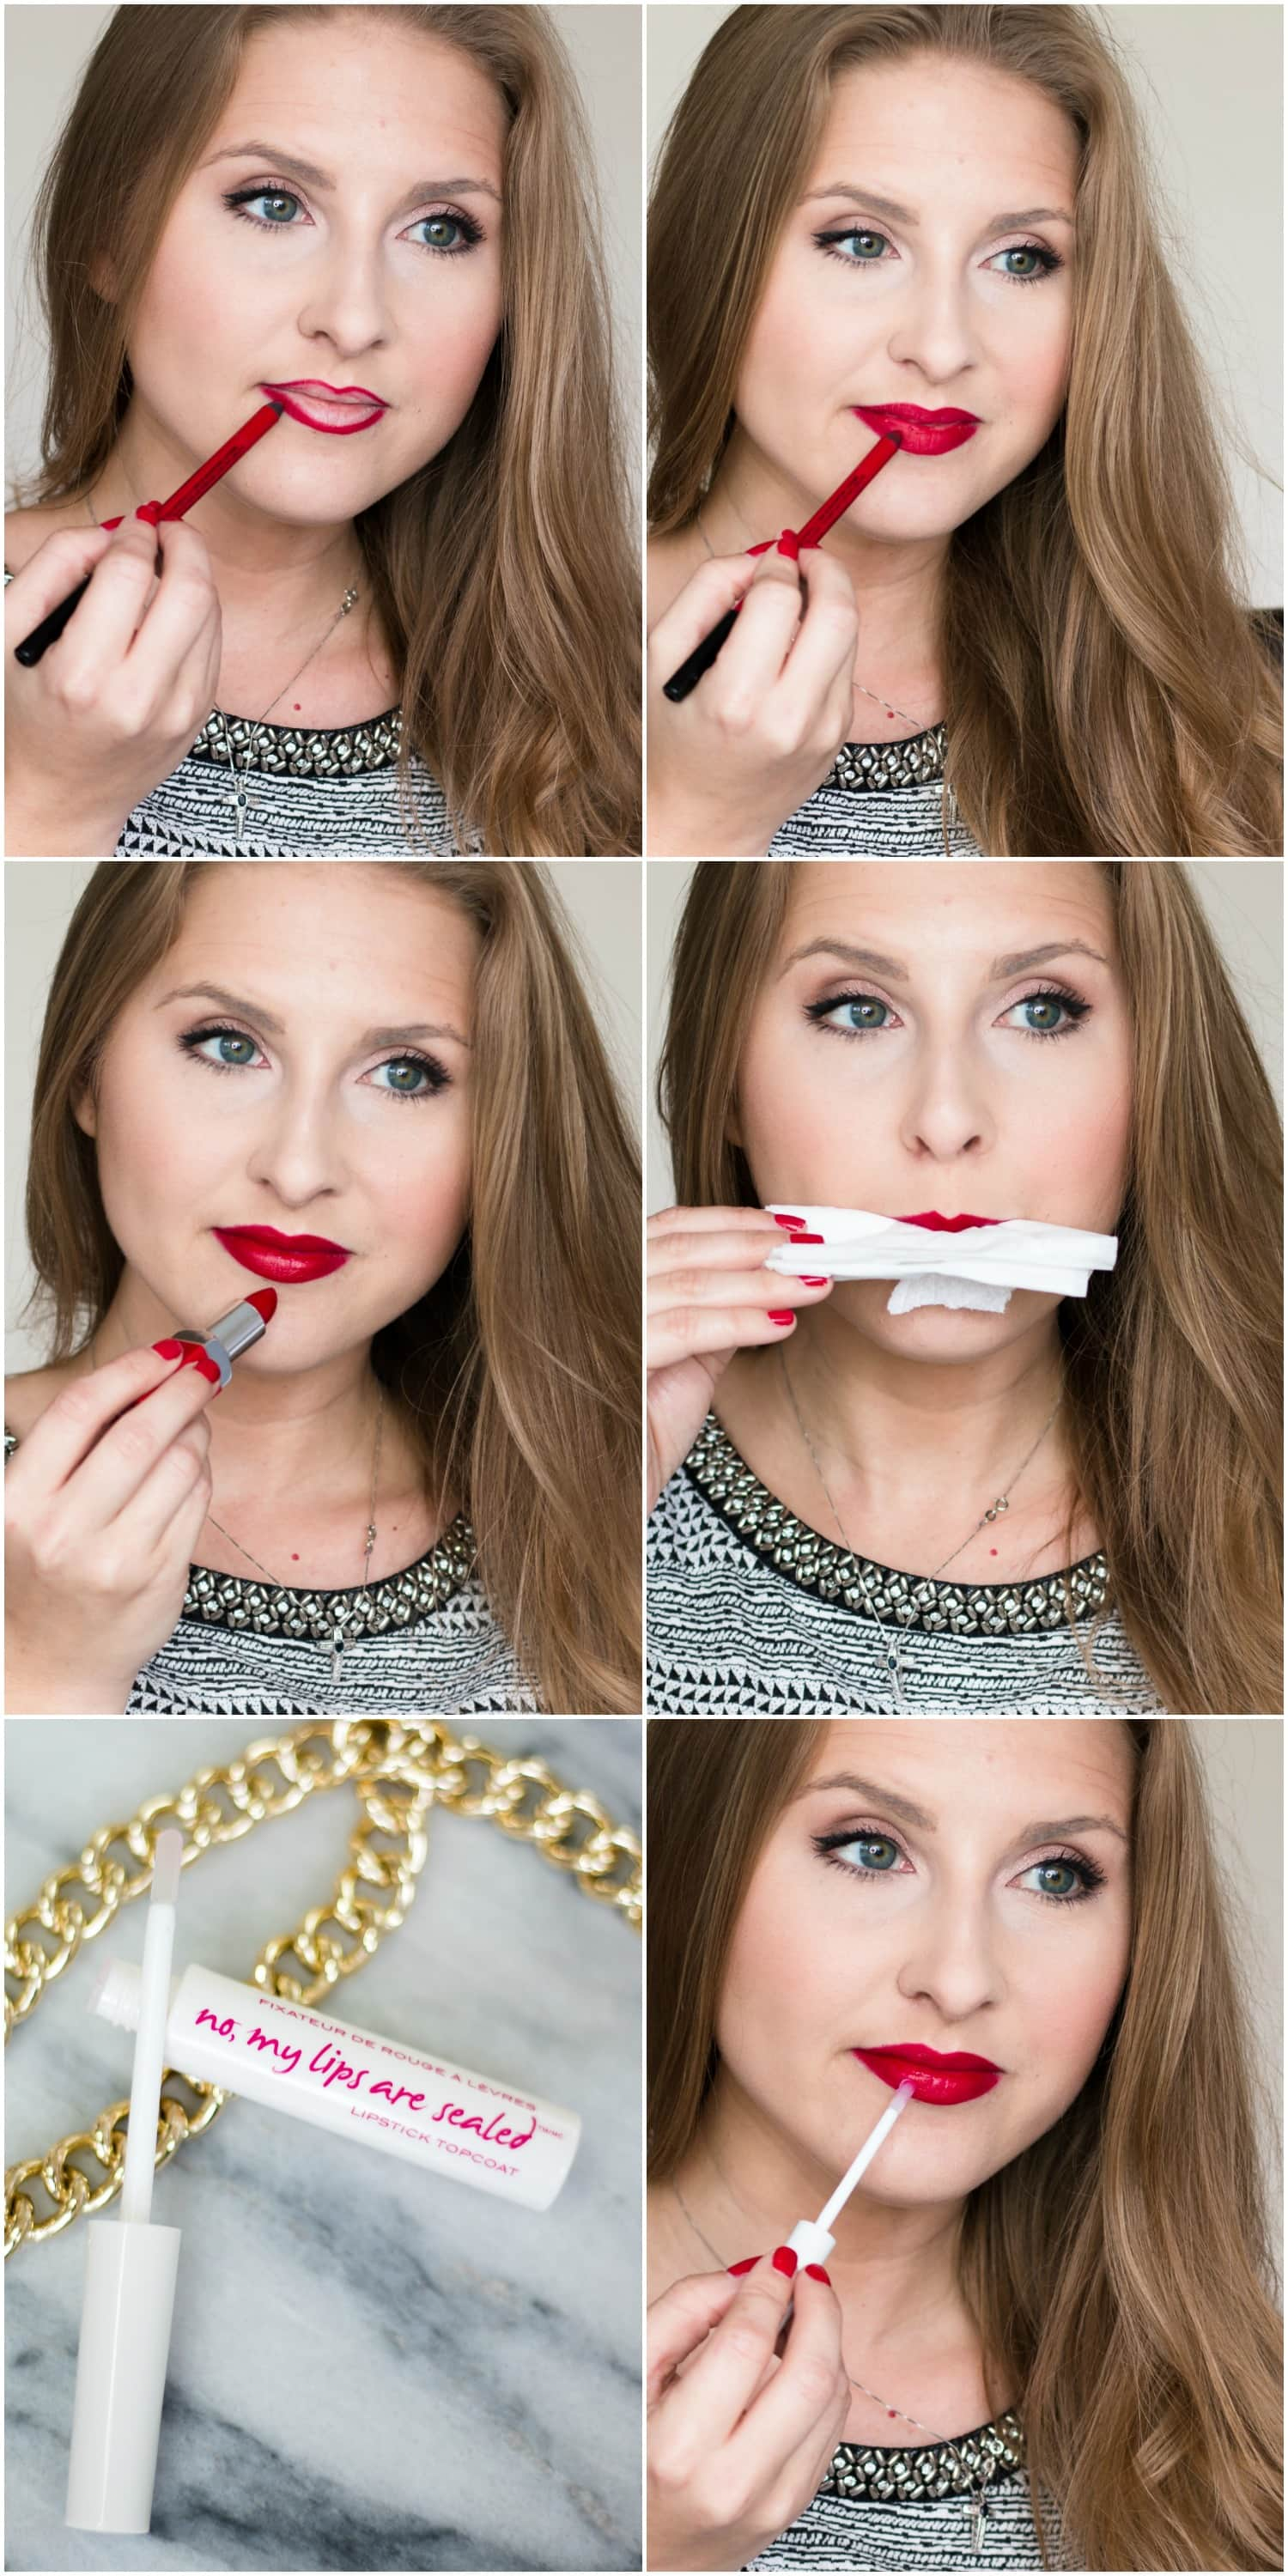 how-to-make-your-lipstick-last-longer-kiss-proof-know-cosmetics-no-my-lips-are-sealed-topcoat-3